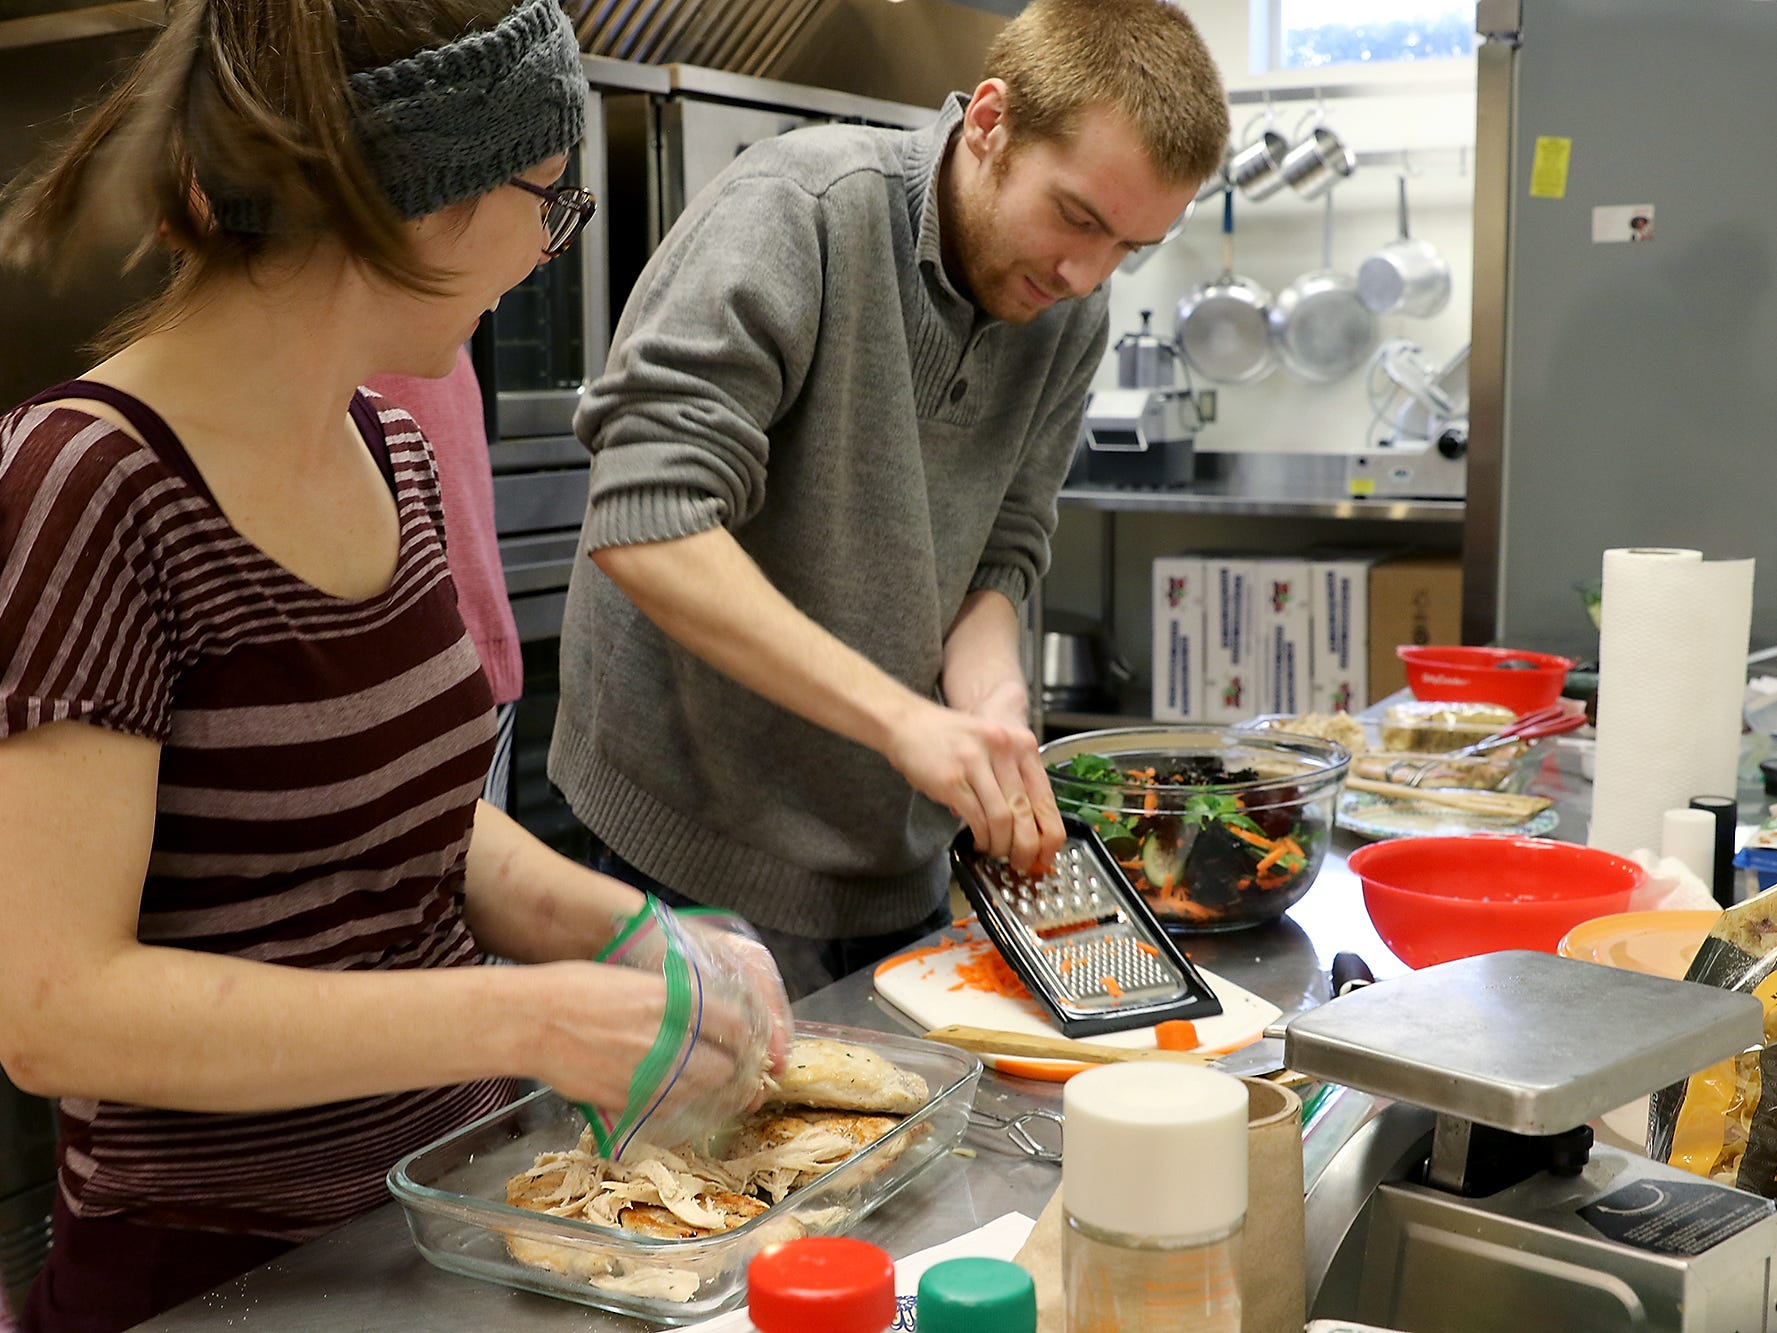 Craig Andrews shreds carrots under the watchful eye of sous chef Britney Doyle in Kitsap Community Resources kitchen in Bremerton on Thursday, February 21, 2019.